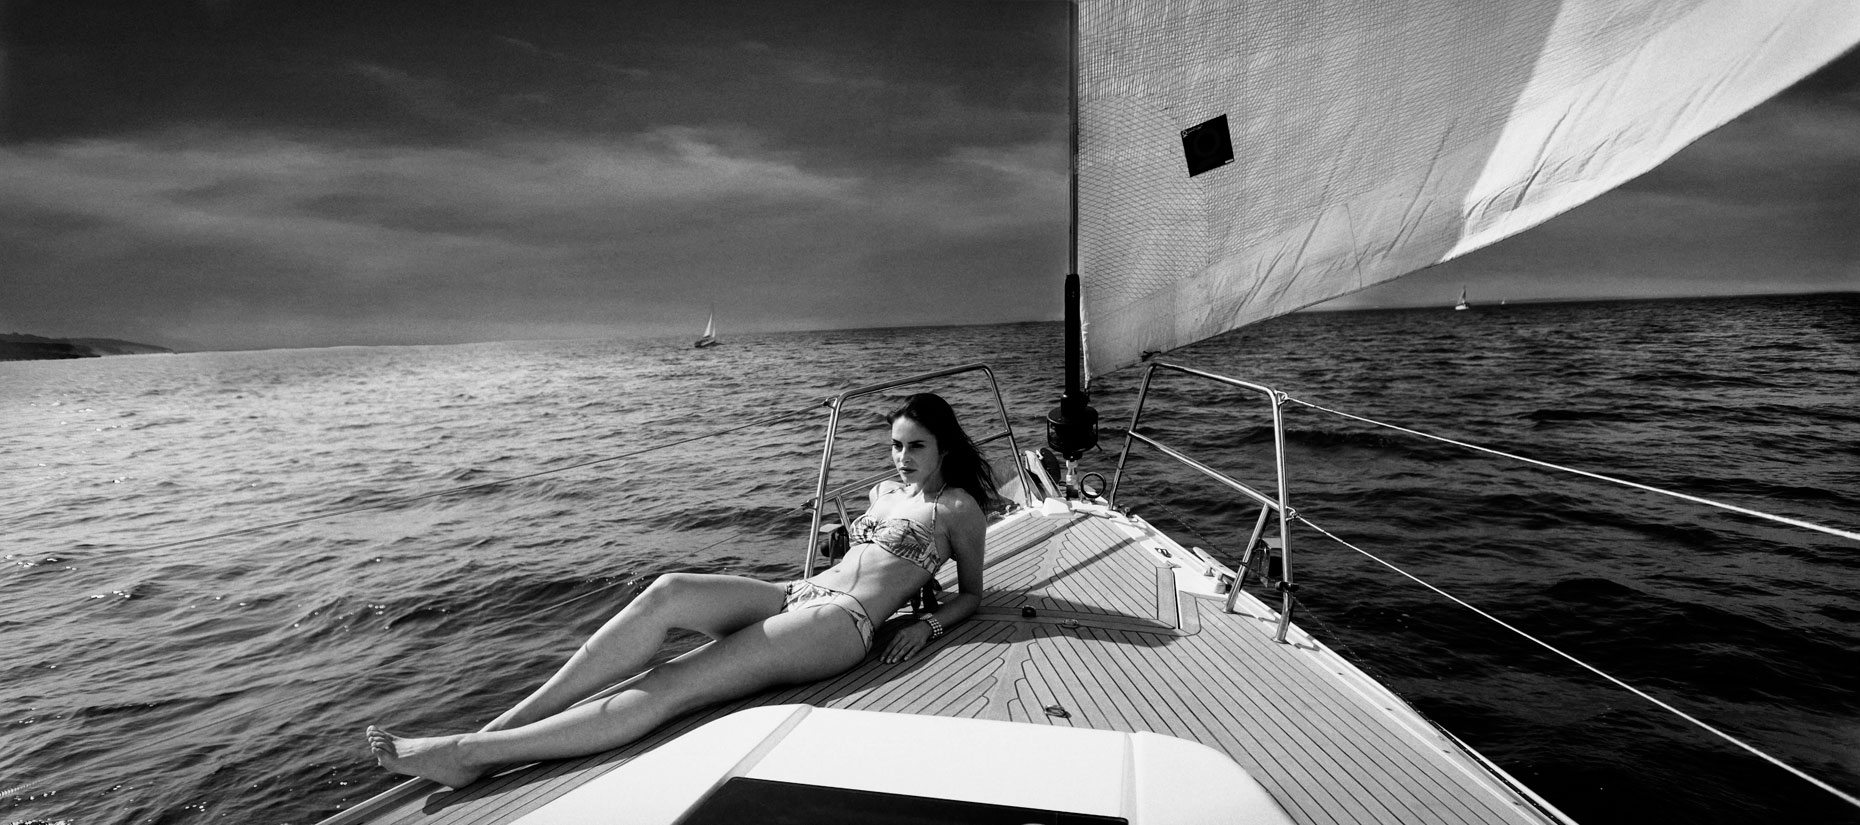 mila bernote,swimwear,bikini,beauty,fashion photography,sailboat,black and white,bill heuberger,william heuberger_20140731_118-2_SG_MASTER-copy